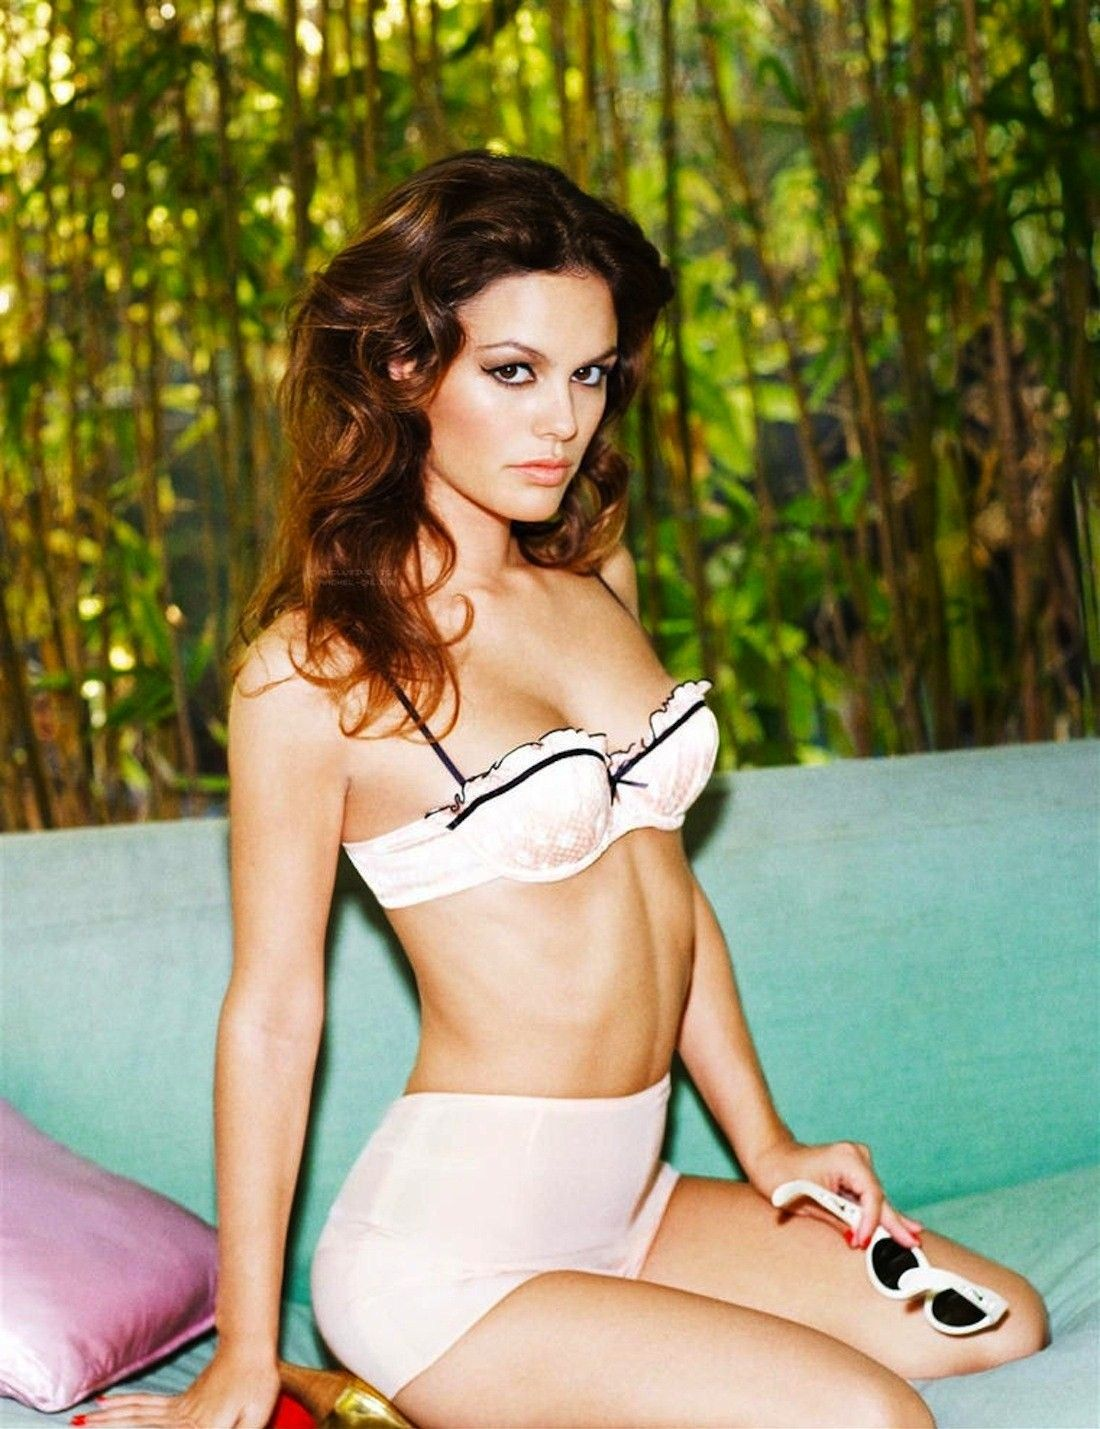 Image result for rachel bilson hot